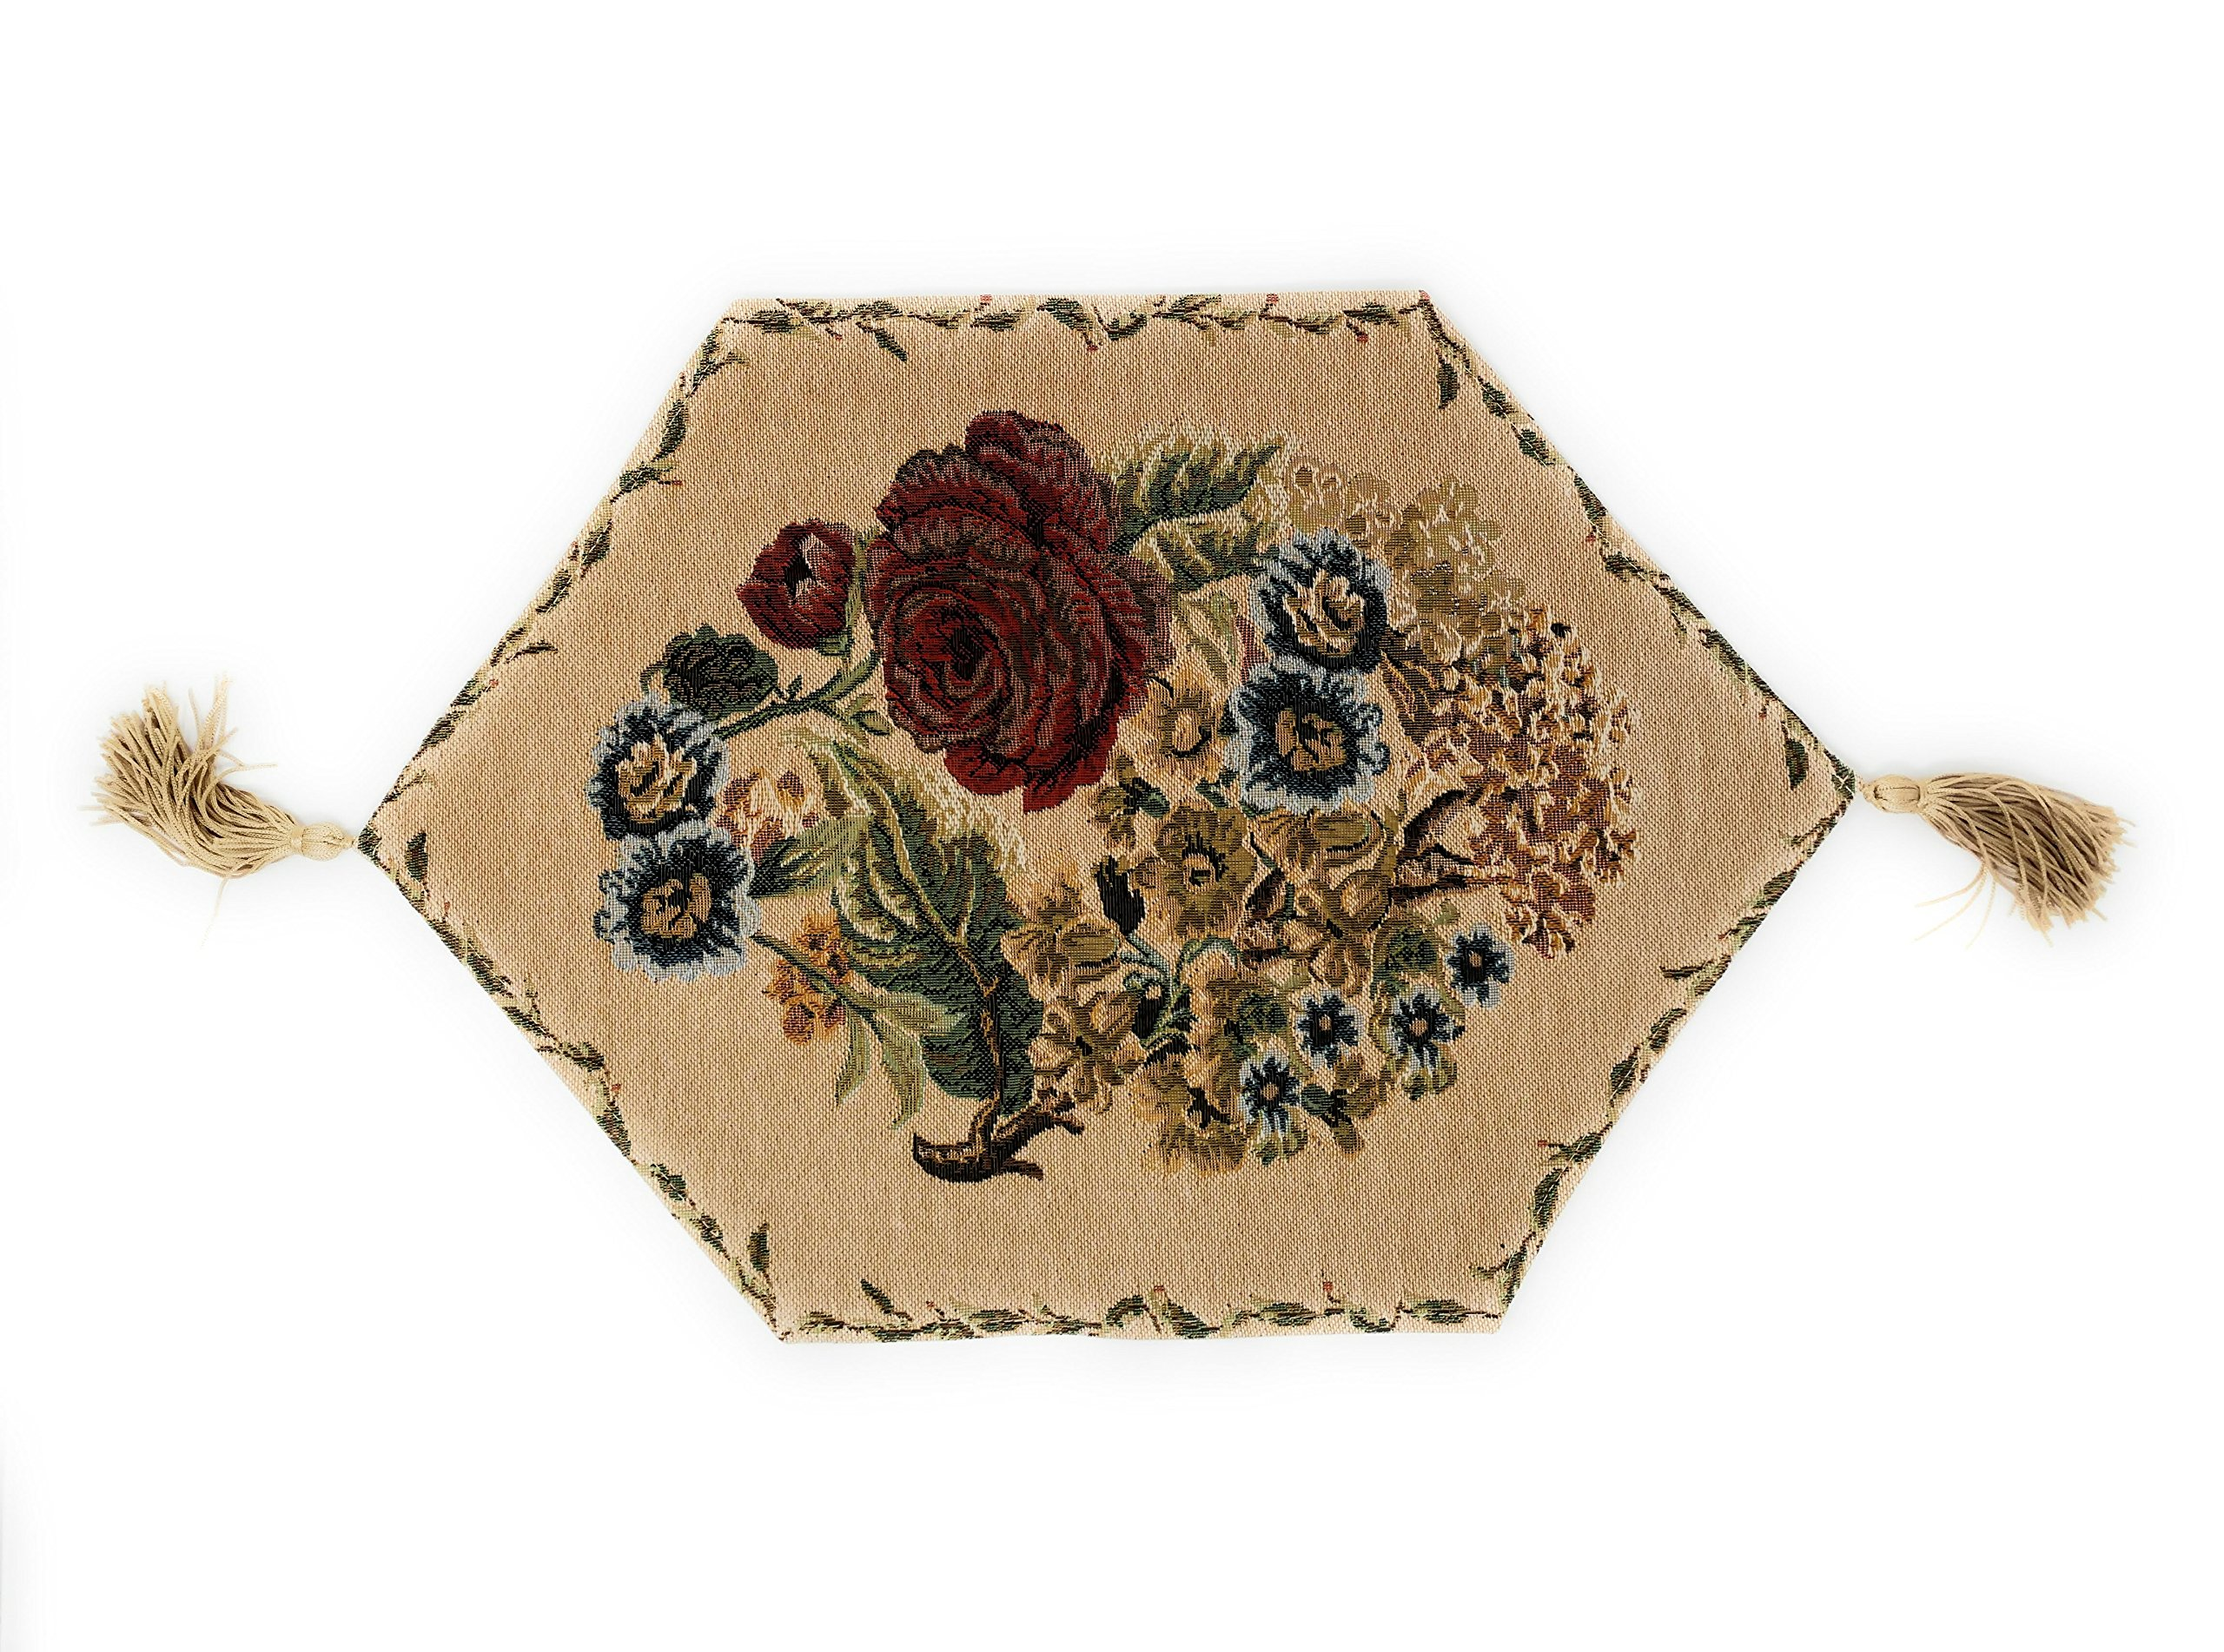 Tache Floral Table Runner Placemat   Morning Meadow   Tapestry Colorful  Country Rustic Table Linen With Tassels   13 ...